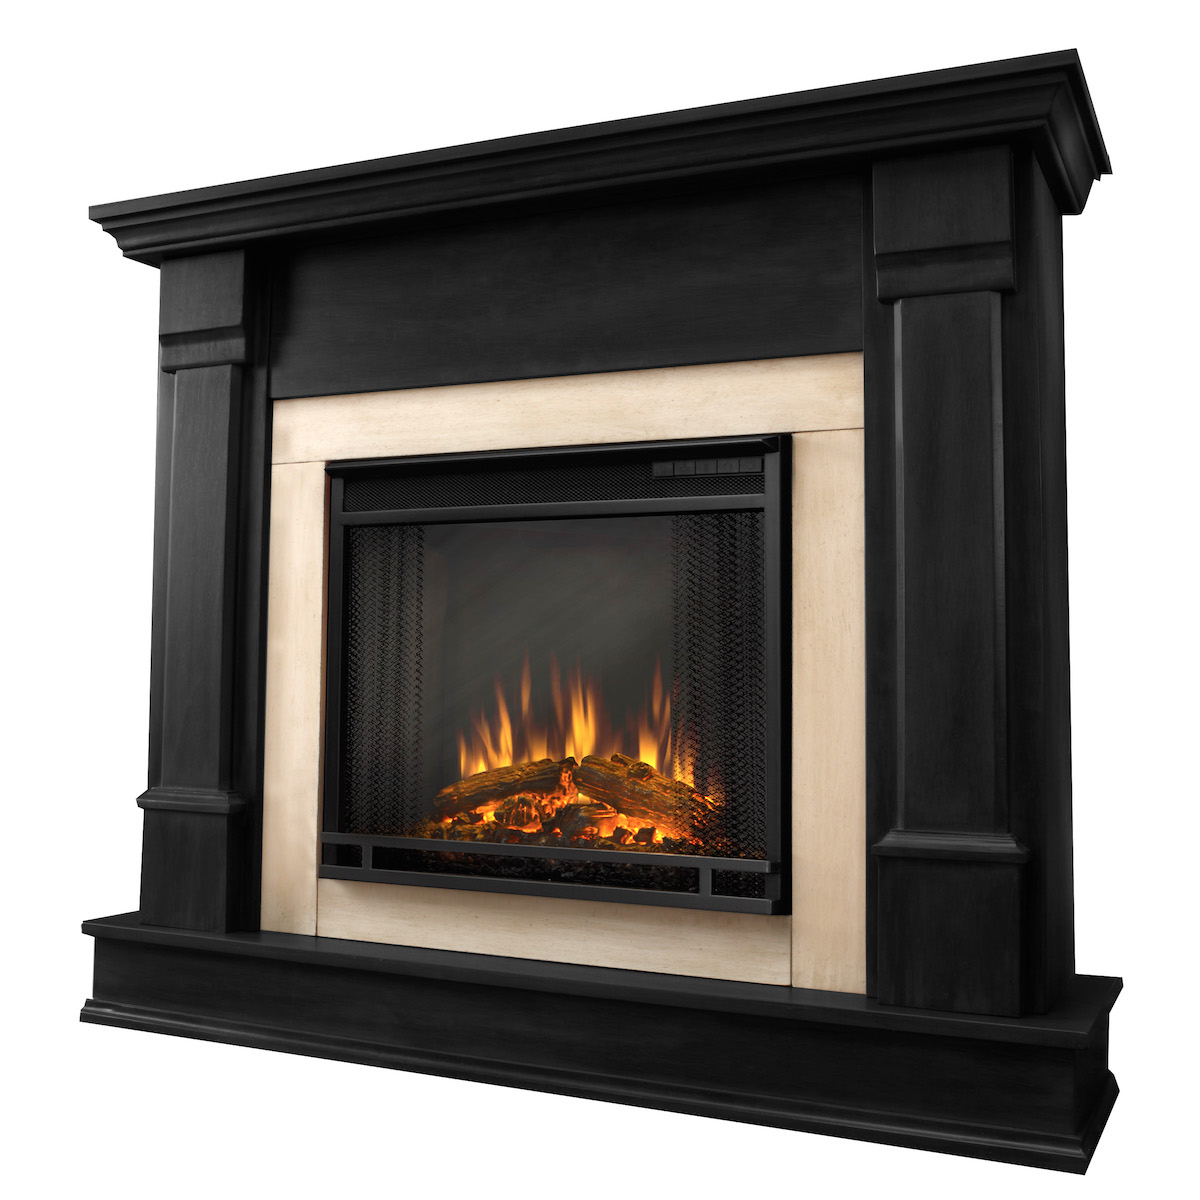 Real flame silverton electric fireplace in black - Black and white fireplace ...